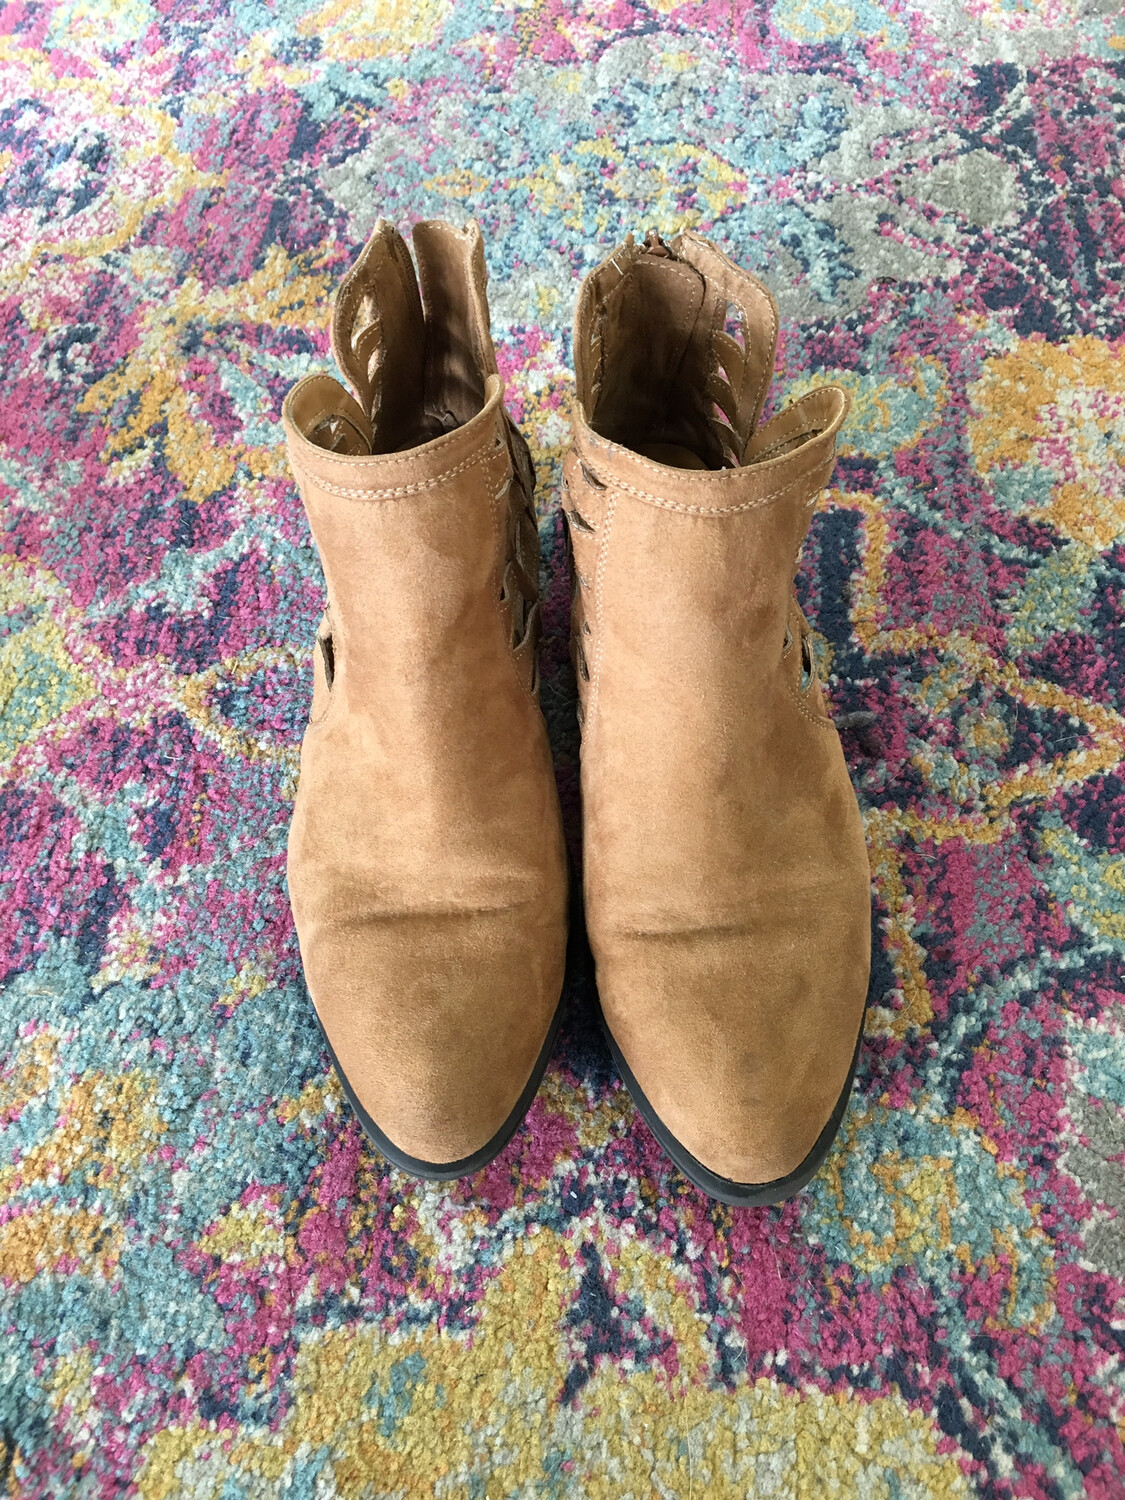 Bamboo Tan Cutout Booties - Size 7.5